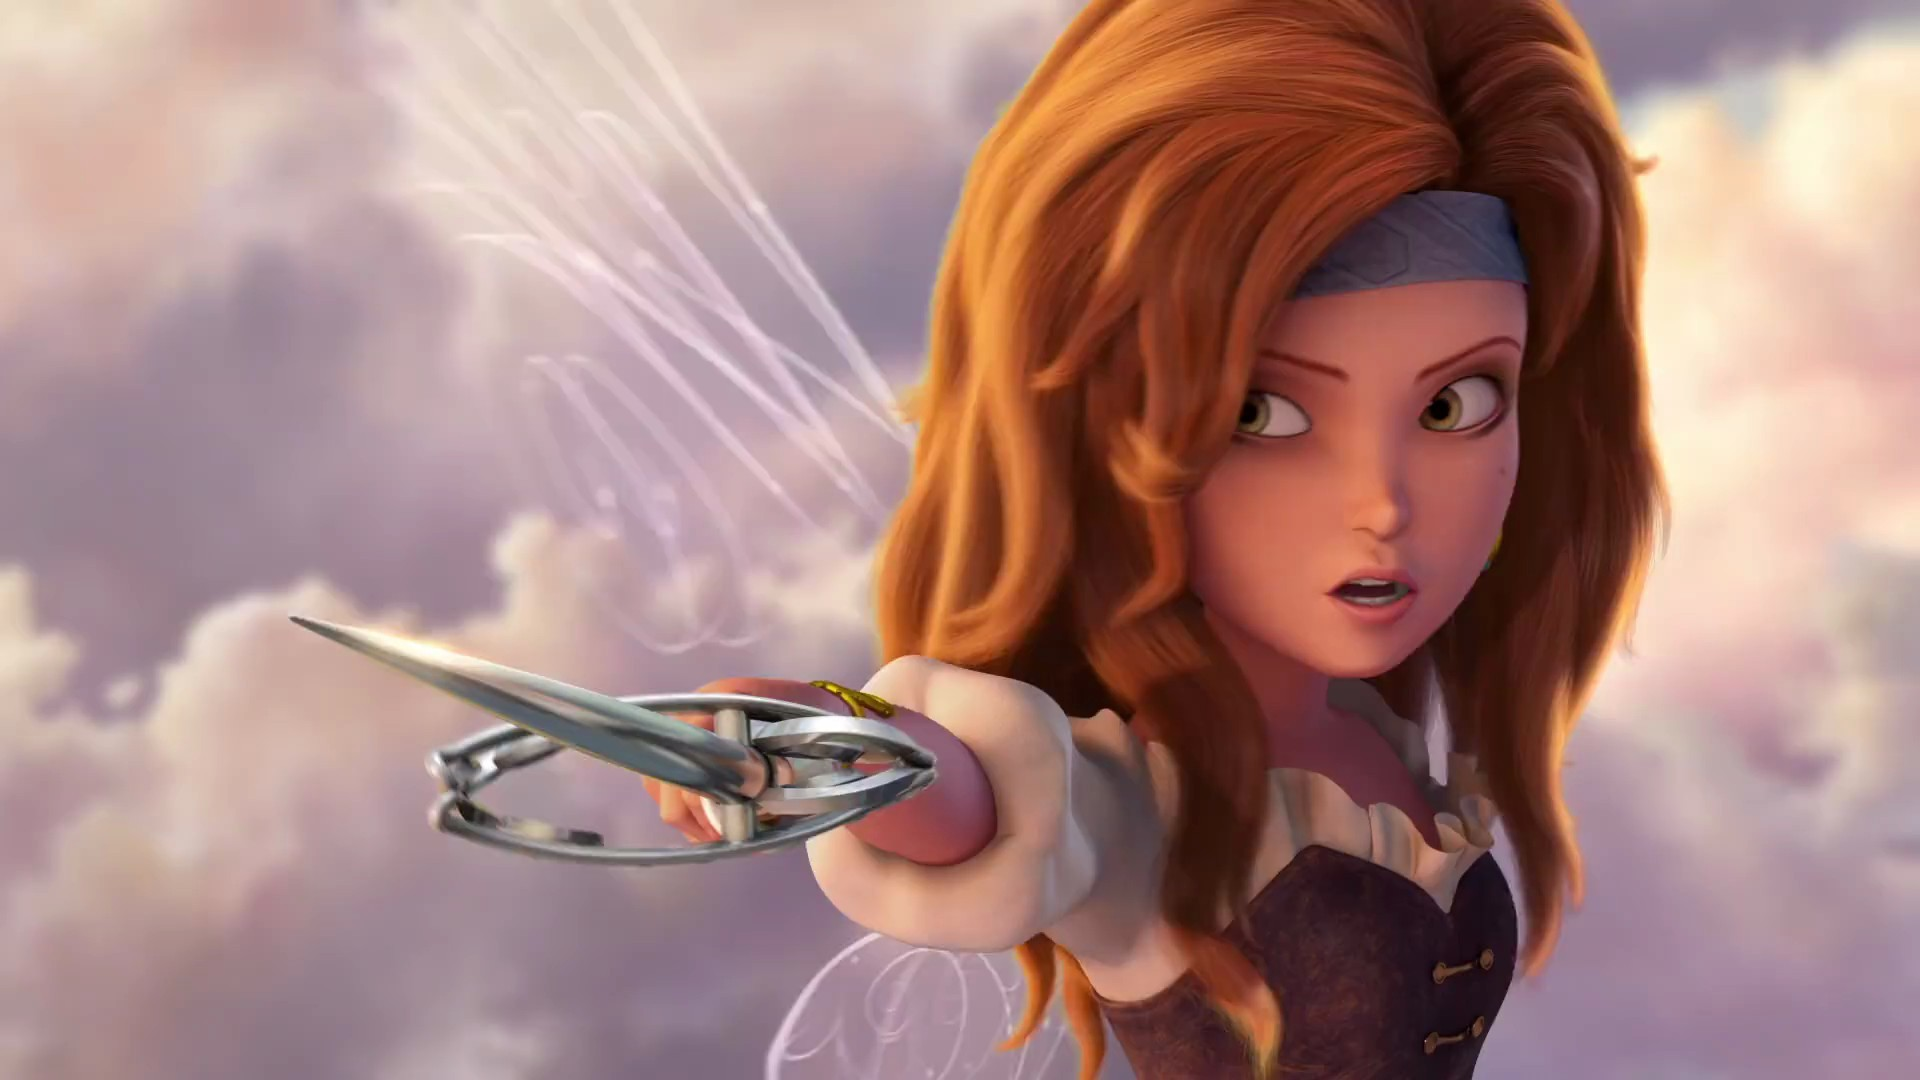 Res: 1920x1080, Zarina, who briefly runs away, returns with perfect hair. [Disney]